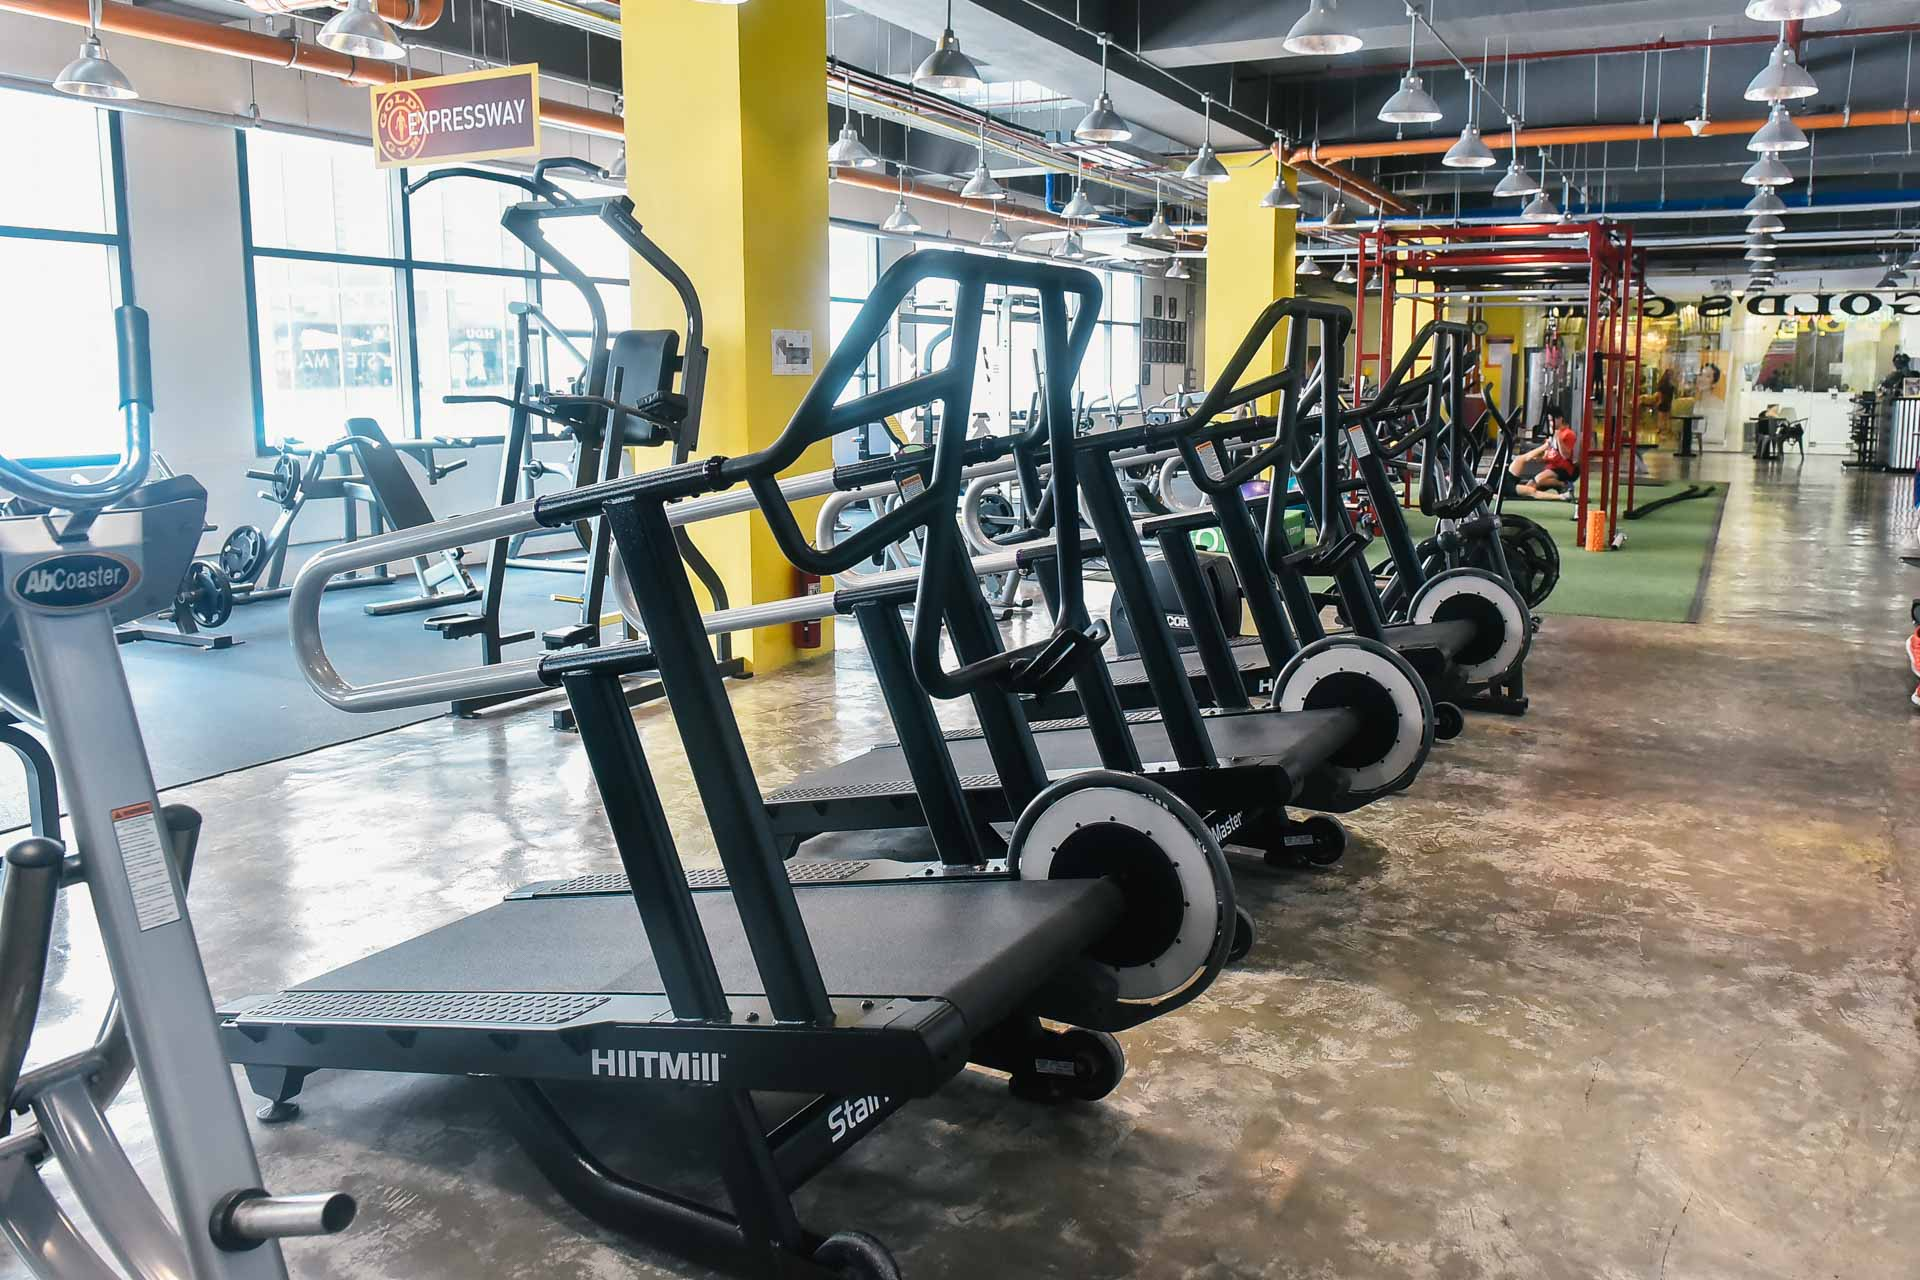 10 of the Most Loved Fitness Gyms in Metro Manila